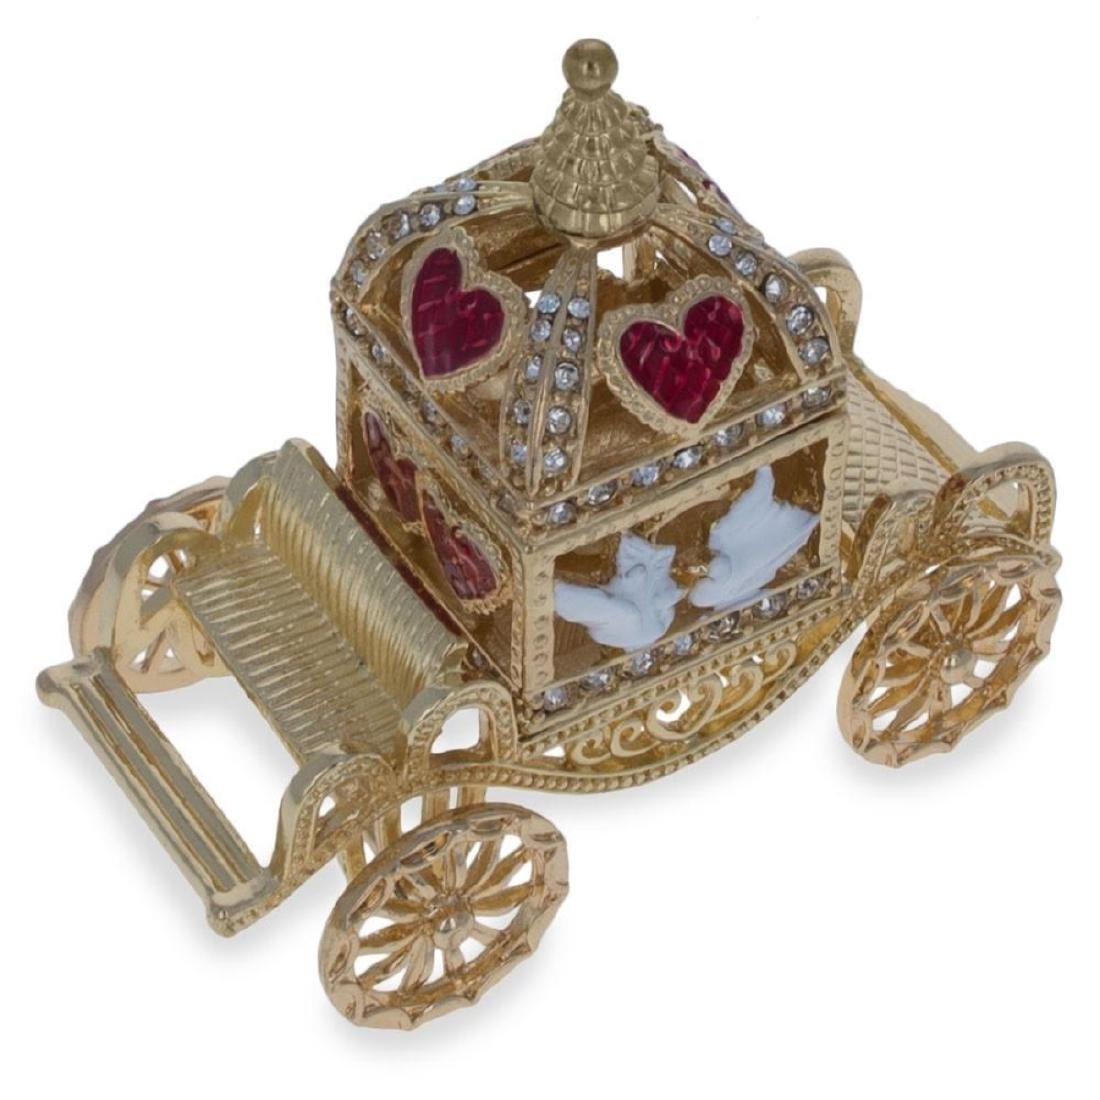 Royal Coronation Coach with Doves Trinket Box Figurine - 5